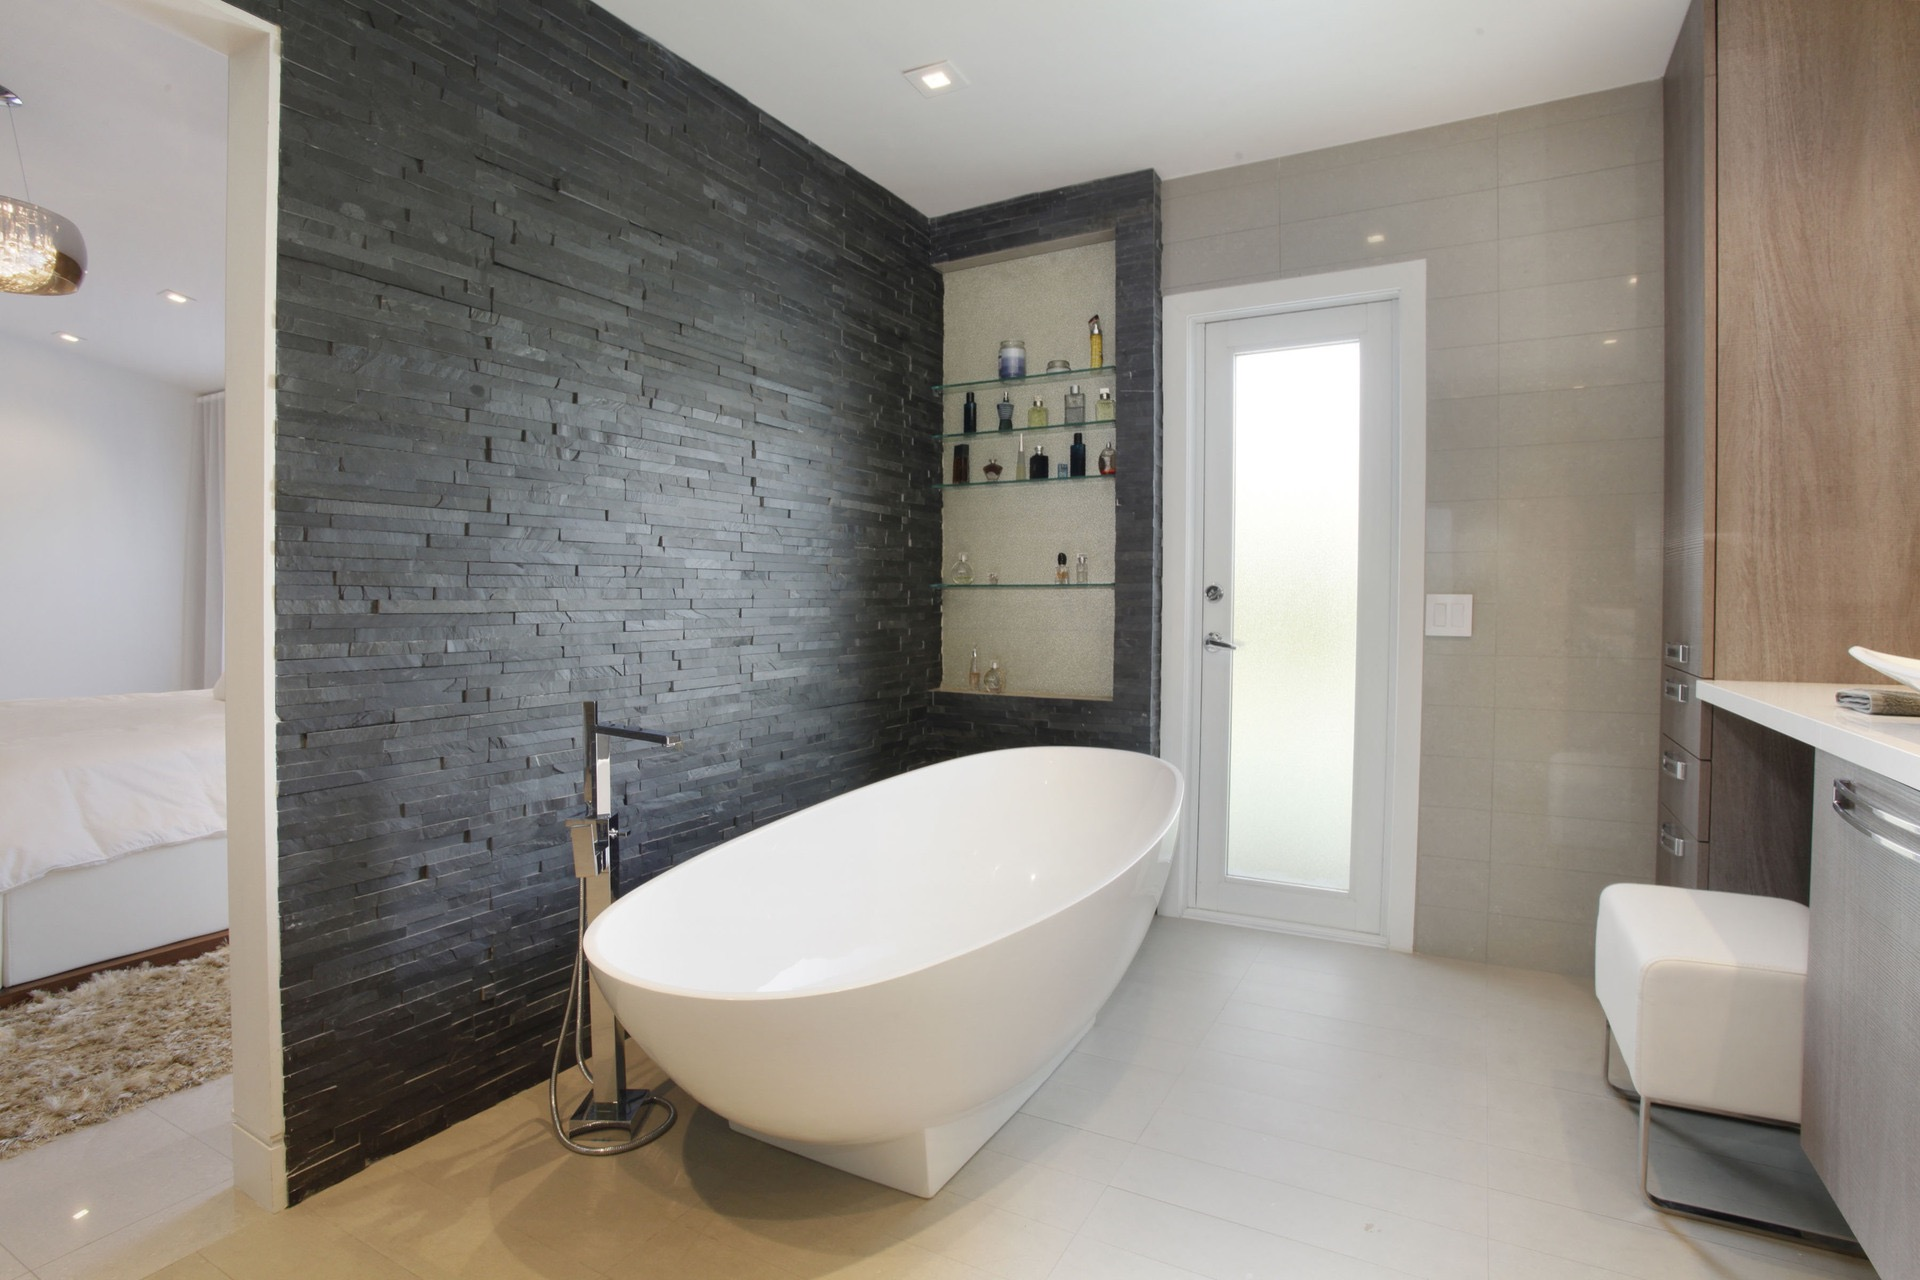 Modern Minimalist Bathroom In Black White Theme With Slate Tile Accent Wall (Image 11 of 14)